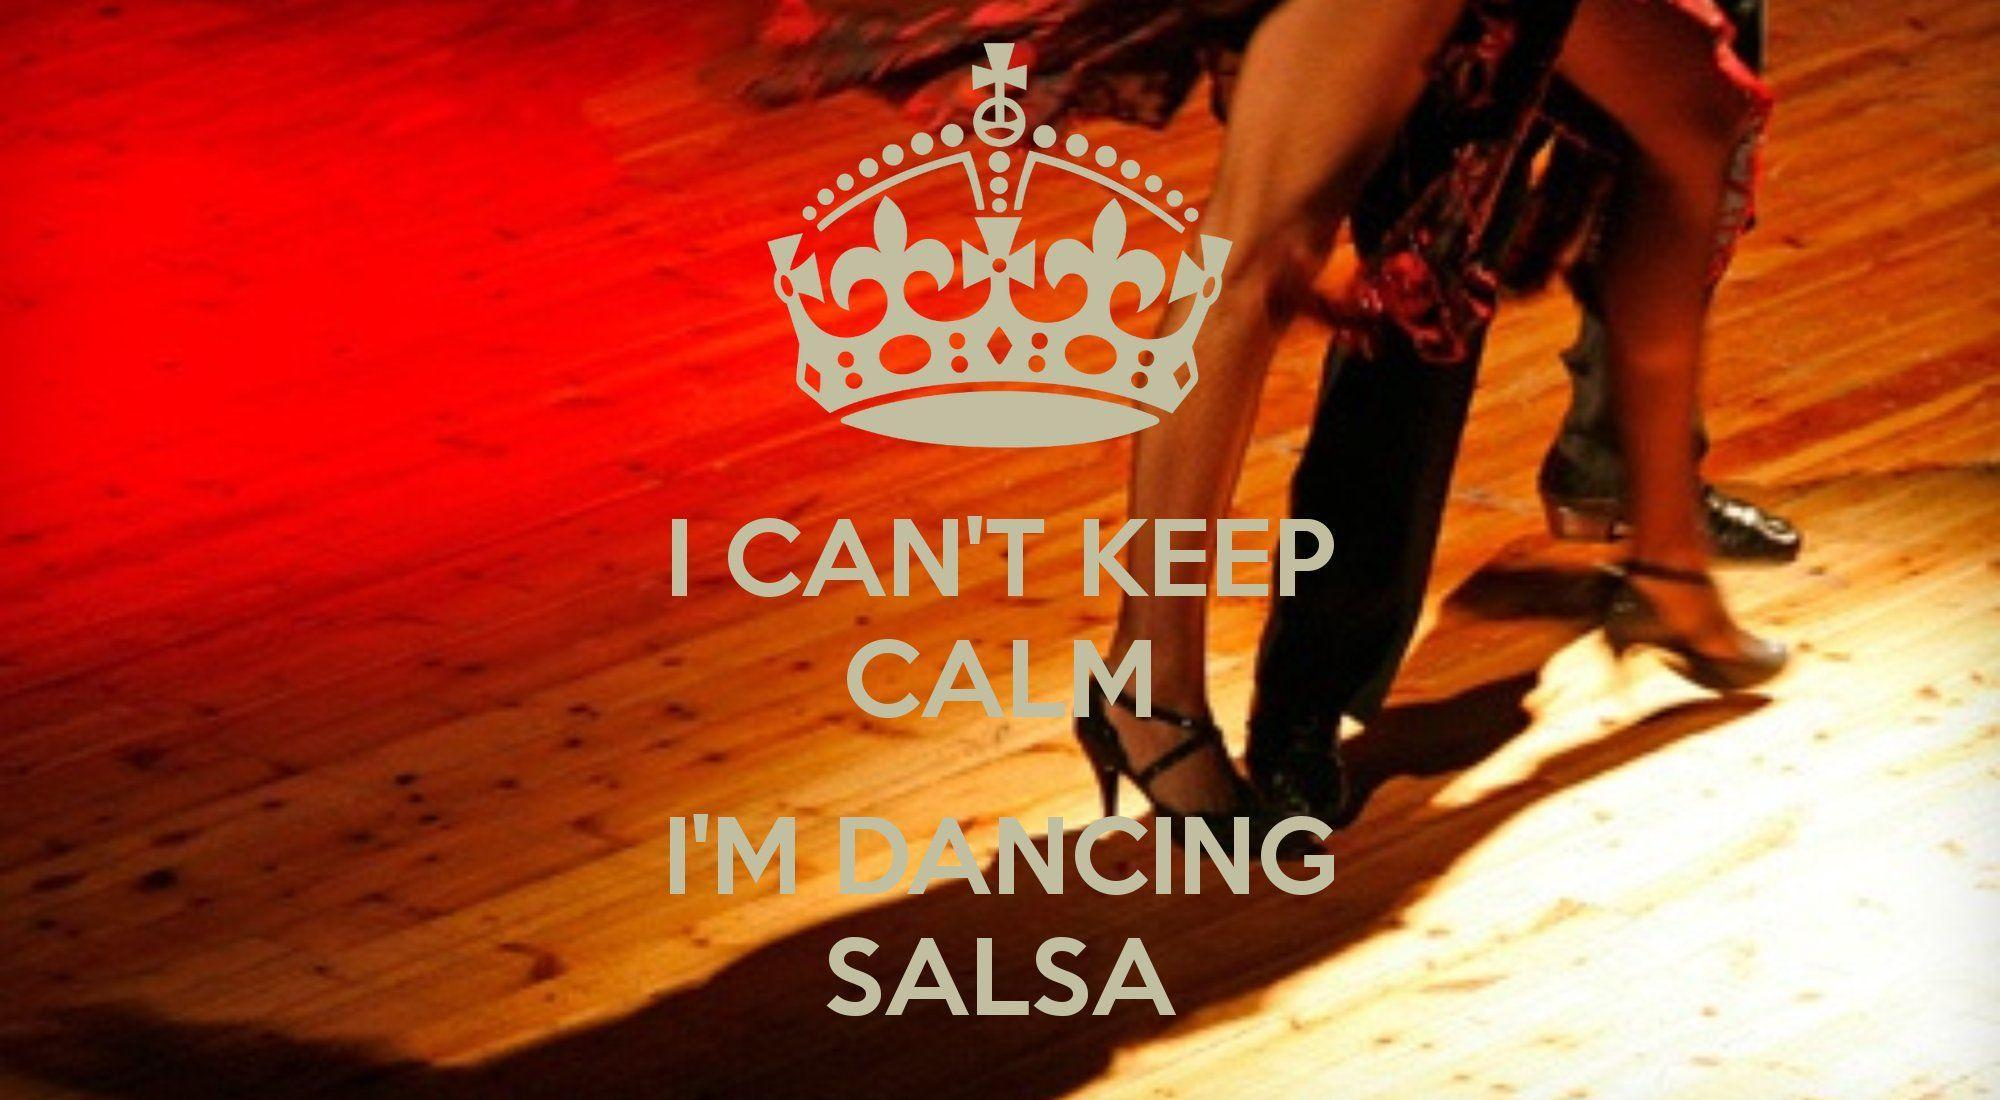 Salsa Wallpapers, HDQ Salsa Image Collection for Desktop, VV.69